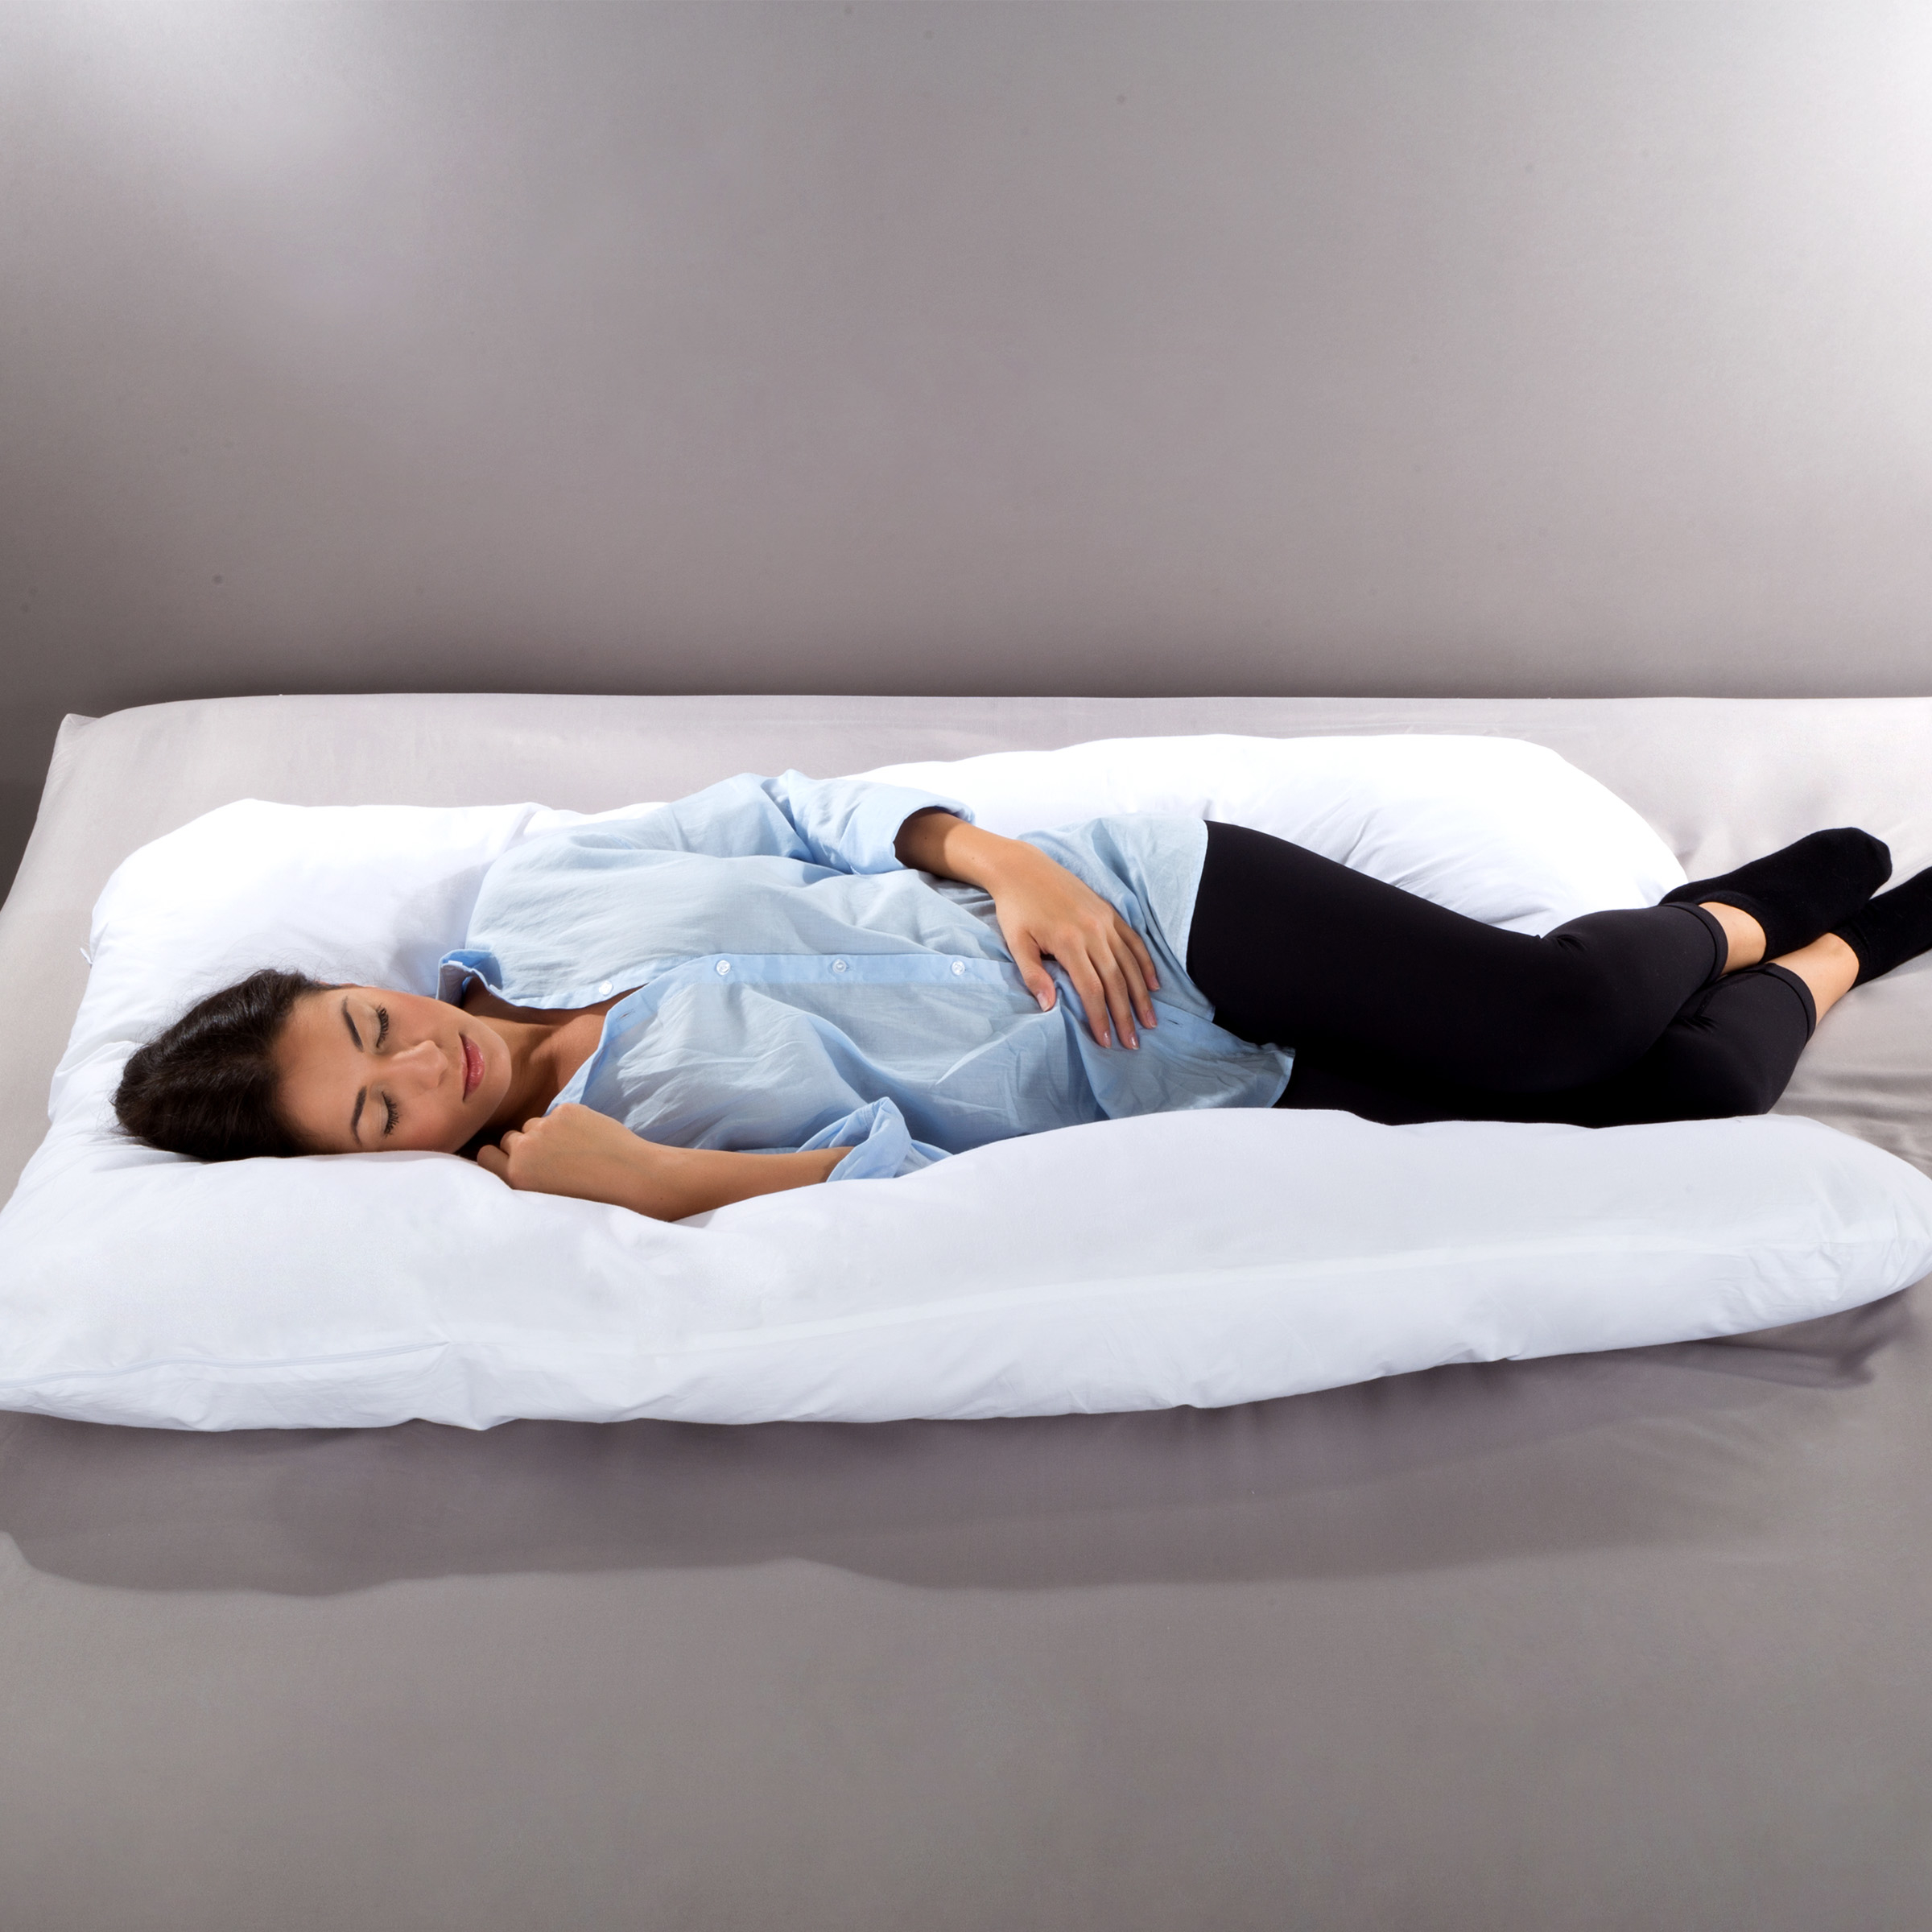 AM901064 7 in 1 Full Body Pillow with